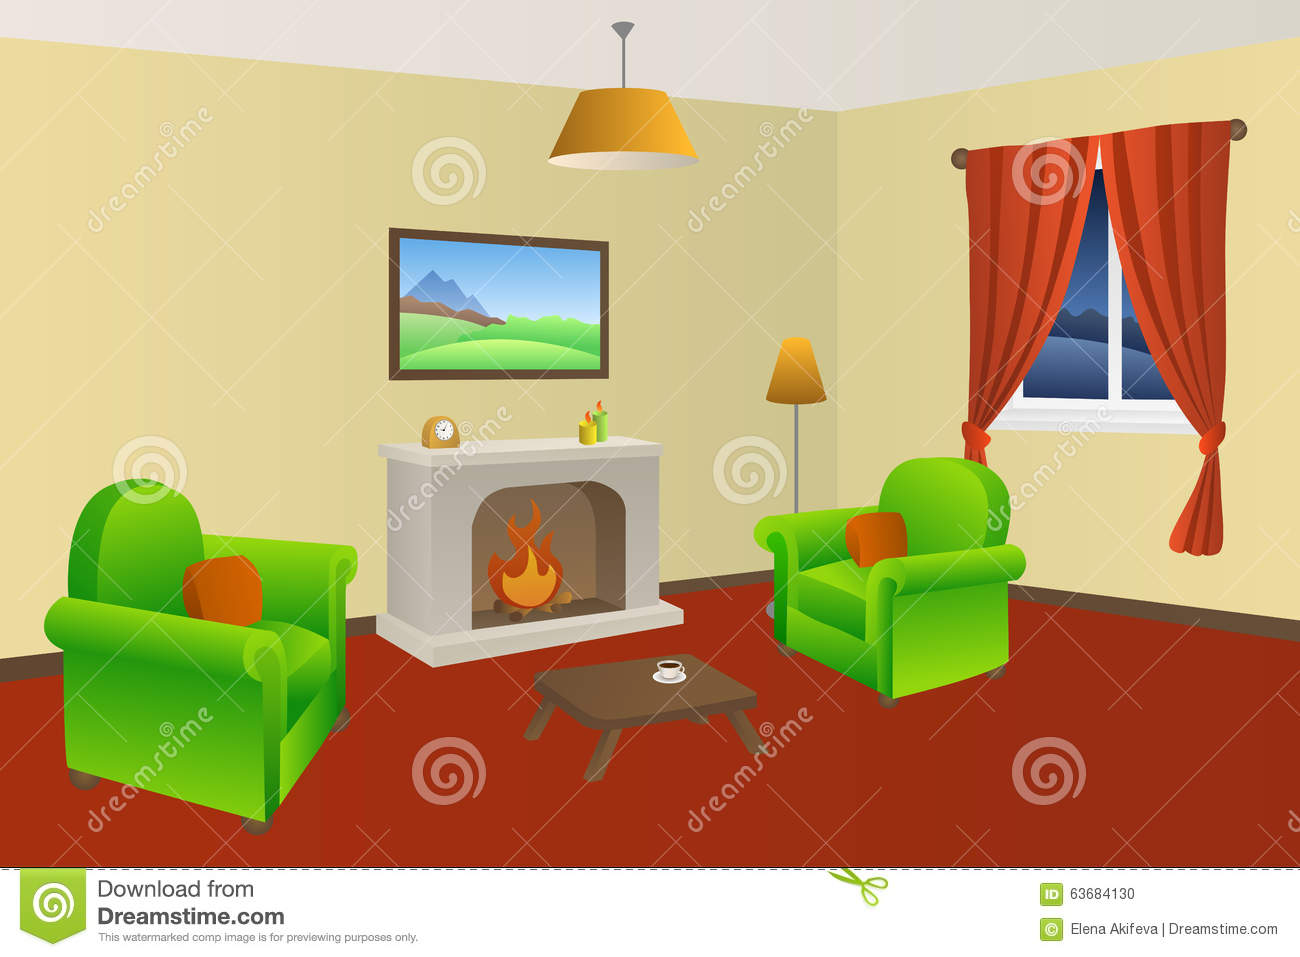 Fireplace living room beige armchair green red lamps window illustration